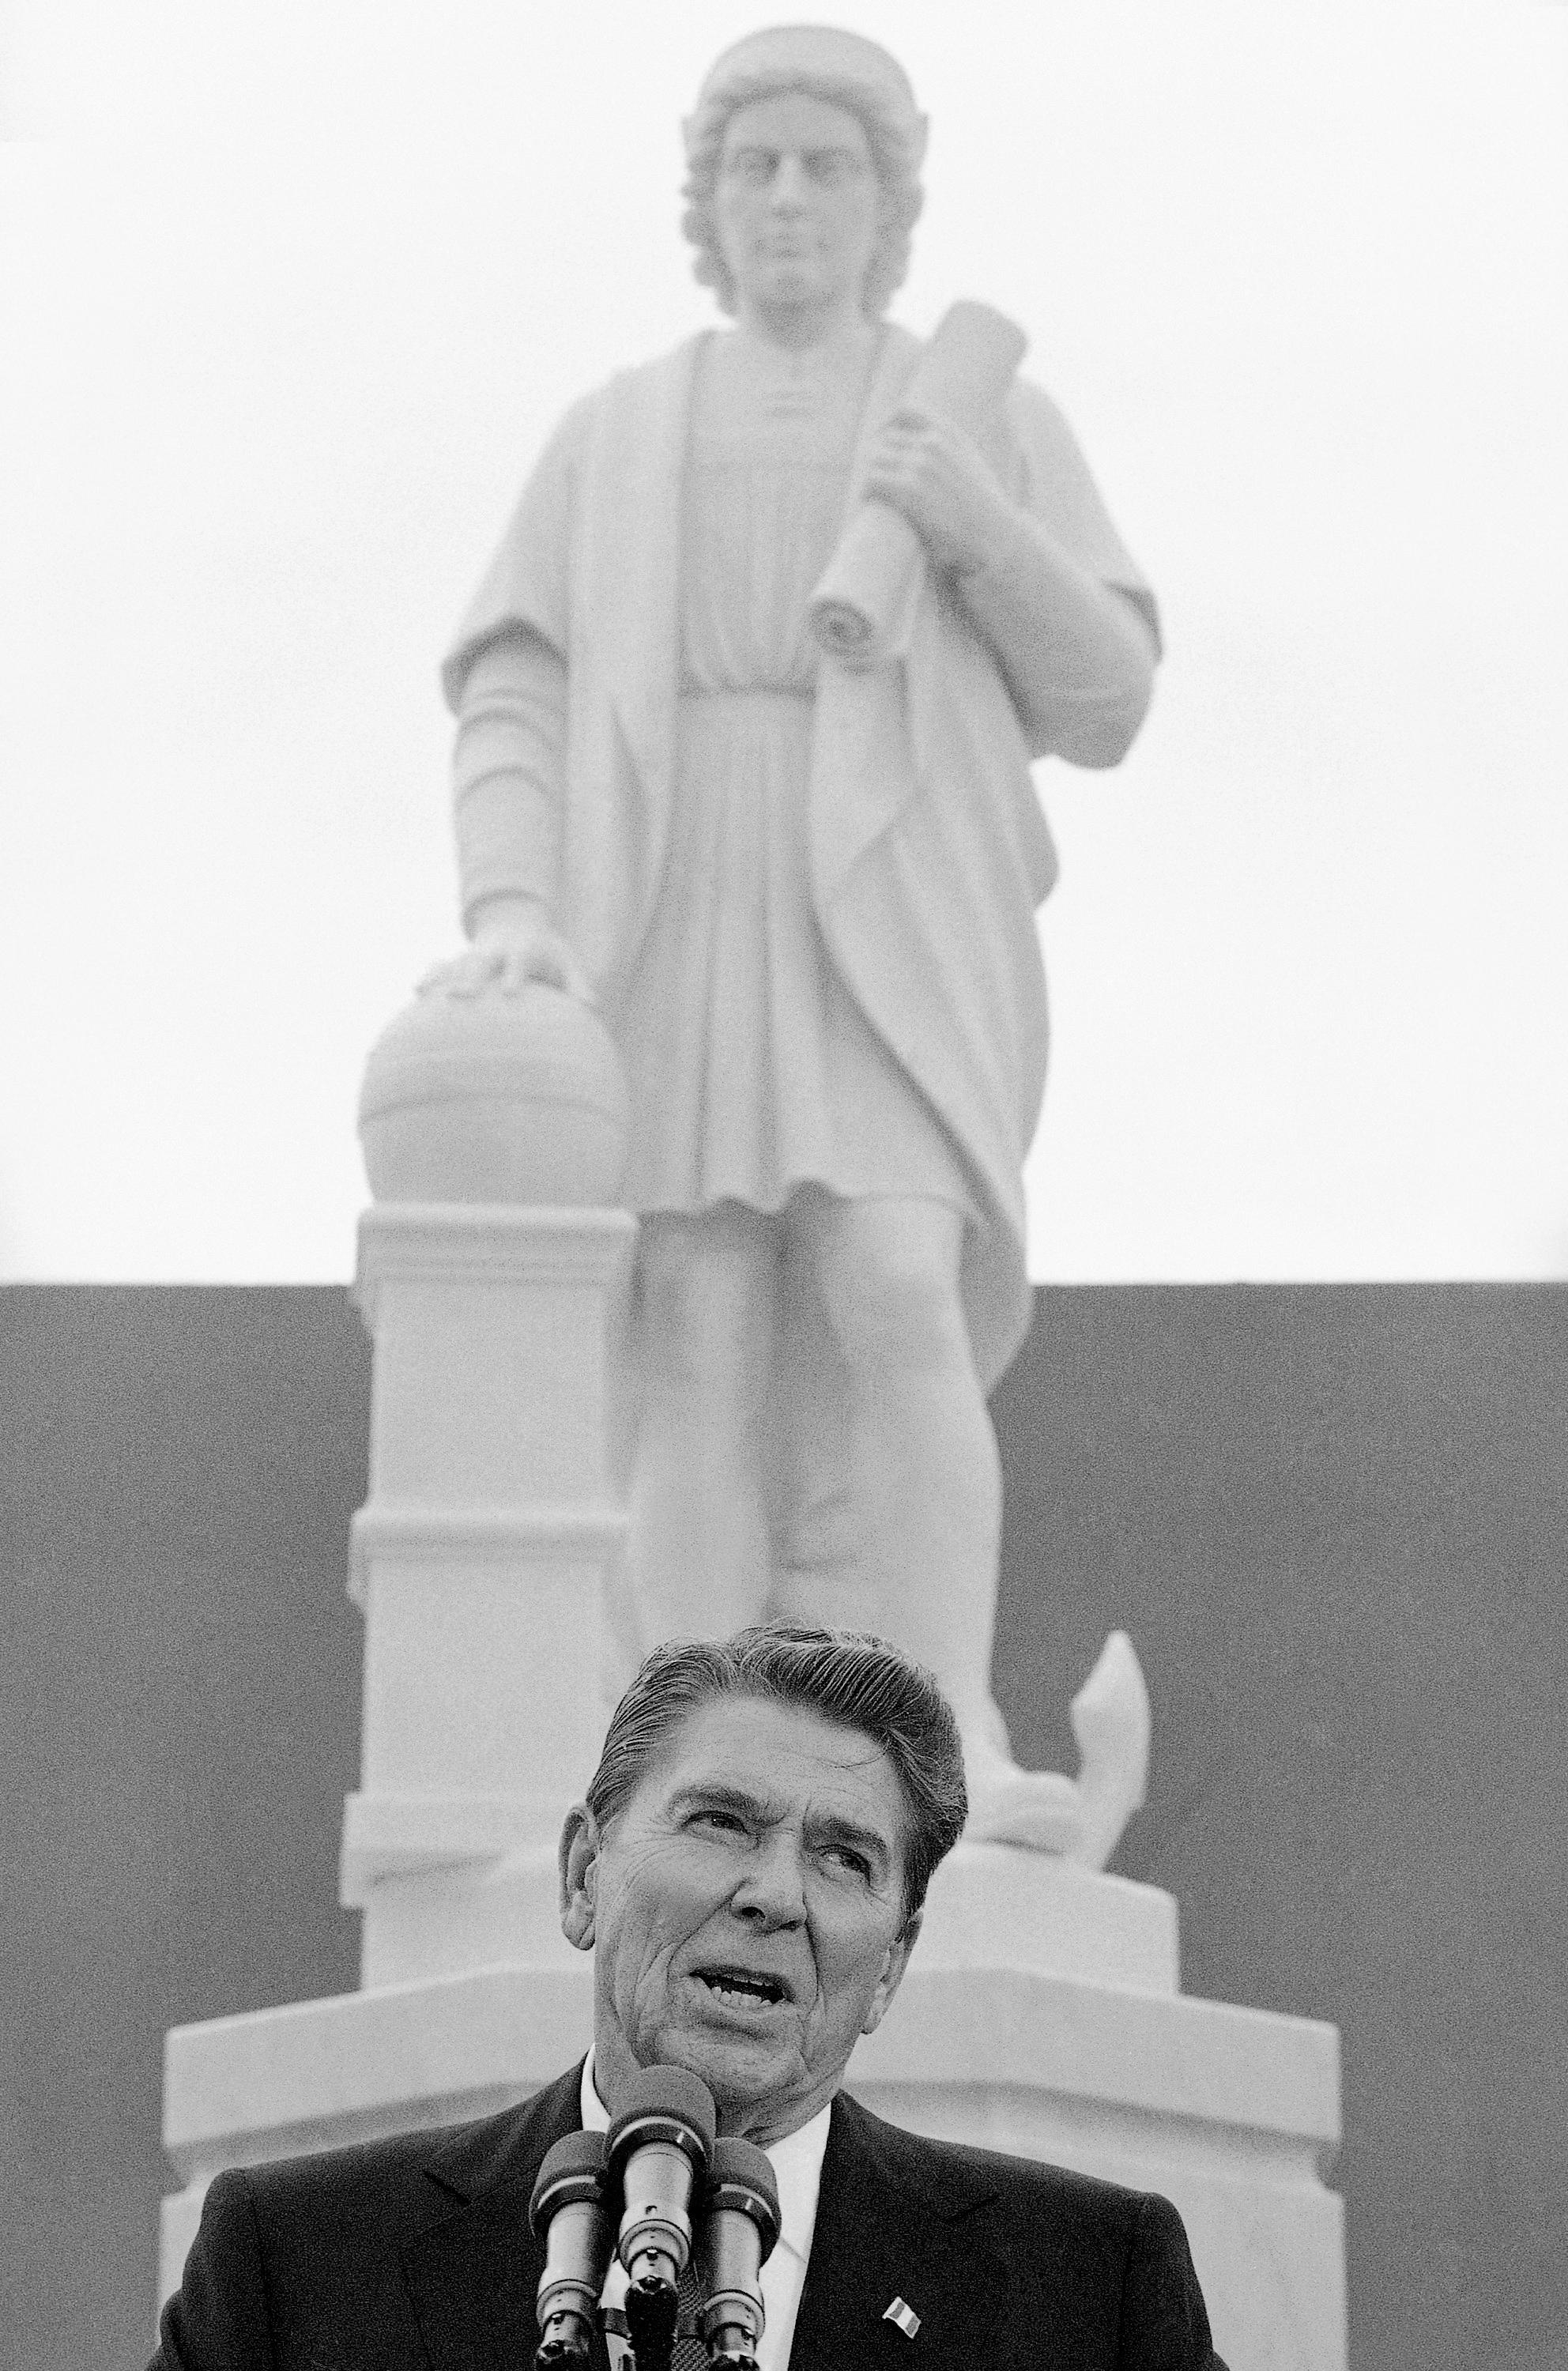 FILE - In this Monday, Oct. 9, 1984, file photo, President Ronald Reagan addresses a ceremony in Baltimore, to unveil a statue of Christopher Columbus. Pieces of the Christopher Columbus statue were retrieved from Baltimore's Inner Harbor on Monday, July 6, 2020. WJZ-TV reports the recovery comes two days after protesters pulled down the figure from the Little Italy neighborhood and threw it into the harbor.(AP Photo/Lana Harris, File)